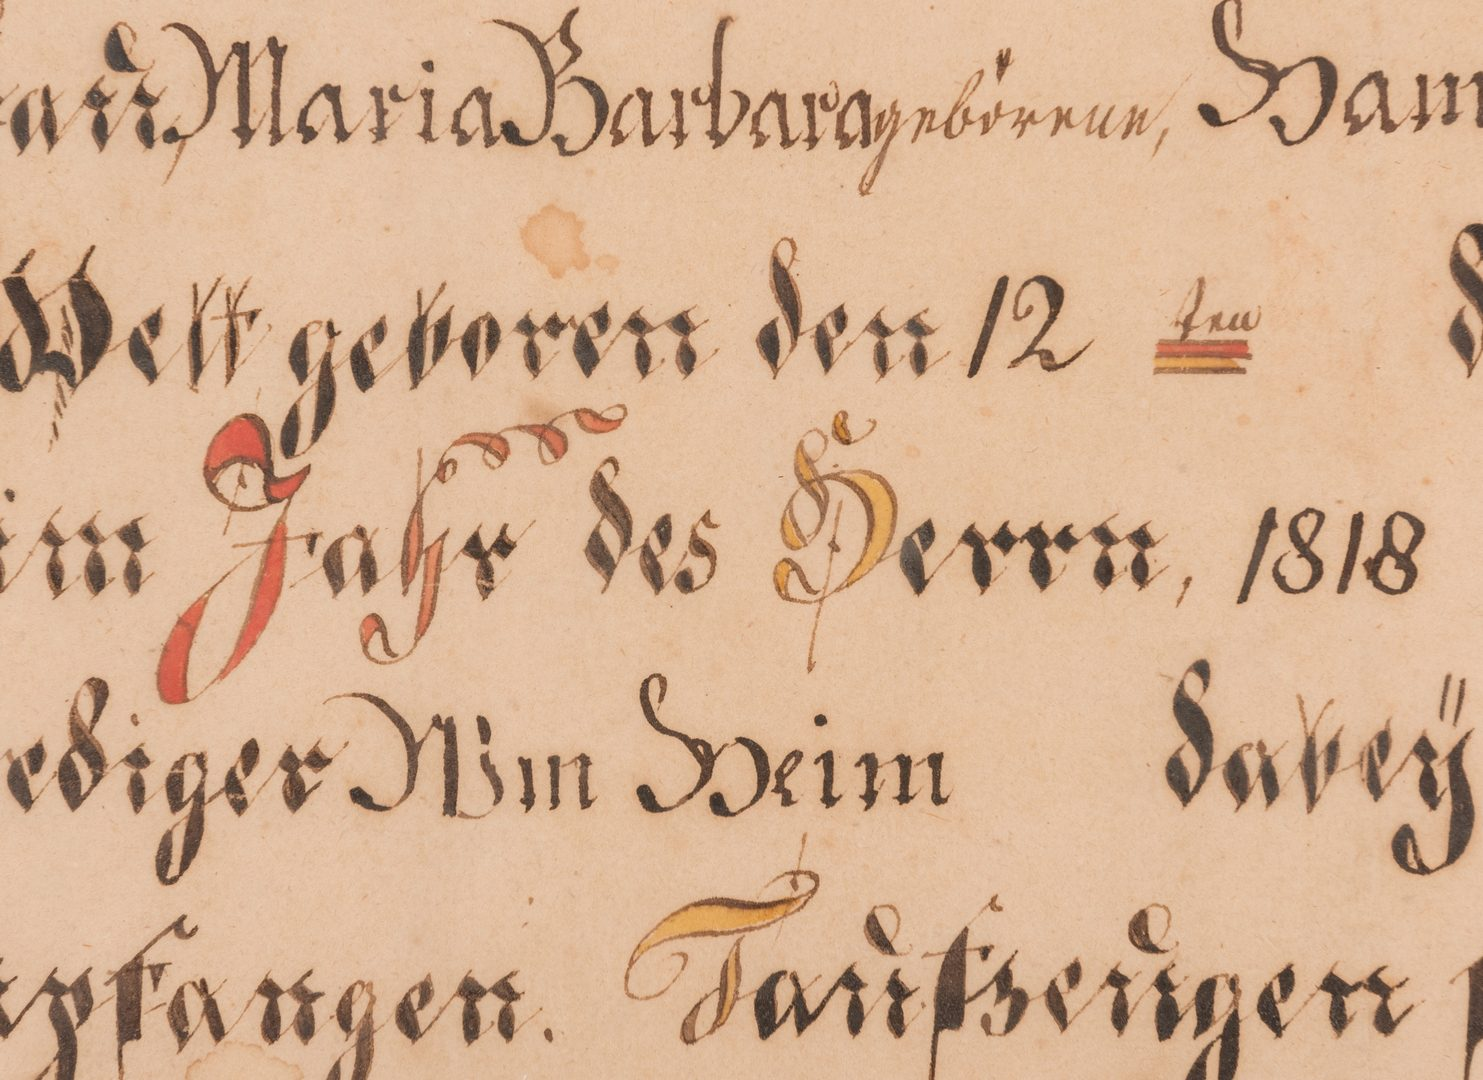 Lot 147: 1818 PA School Fraktur with Eagle